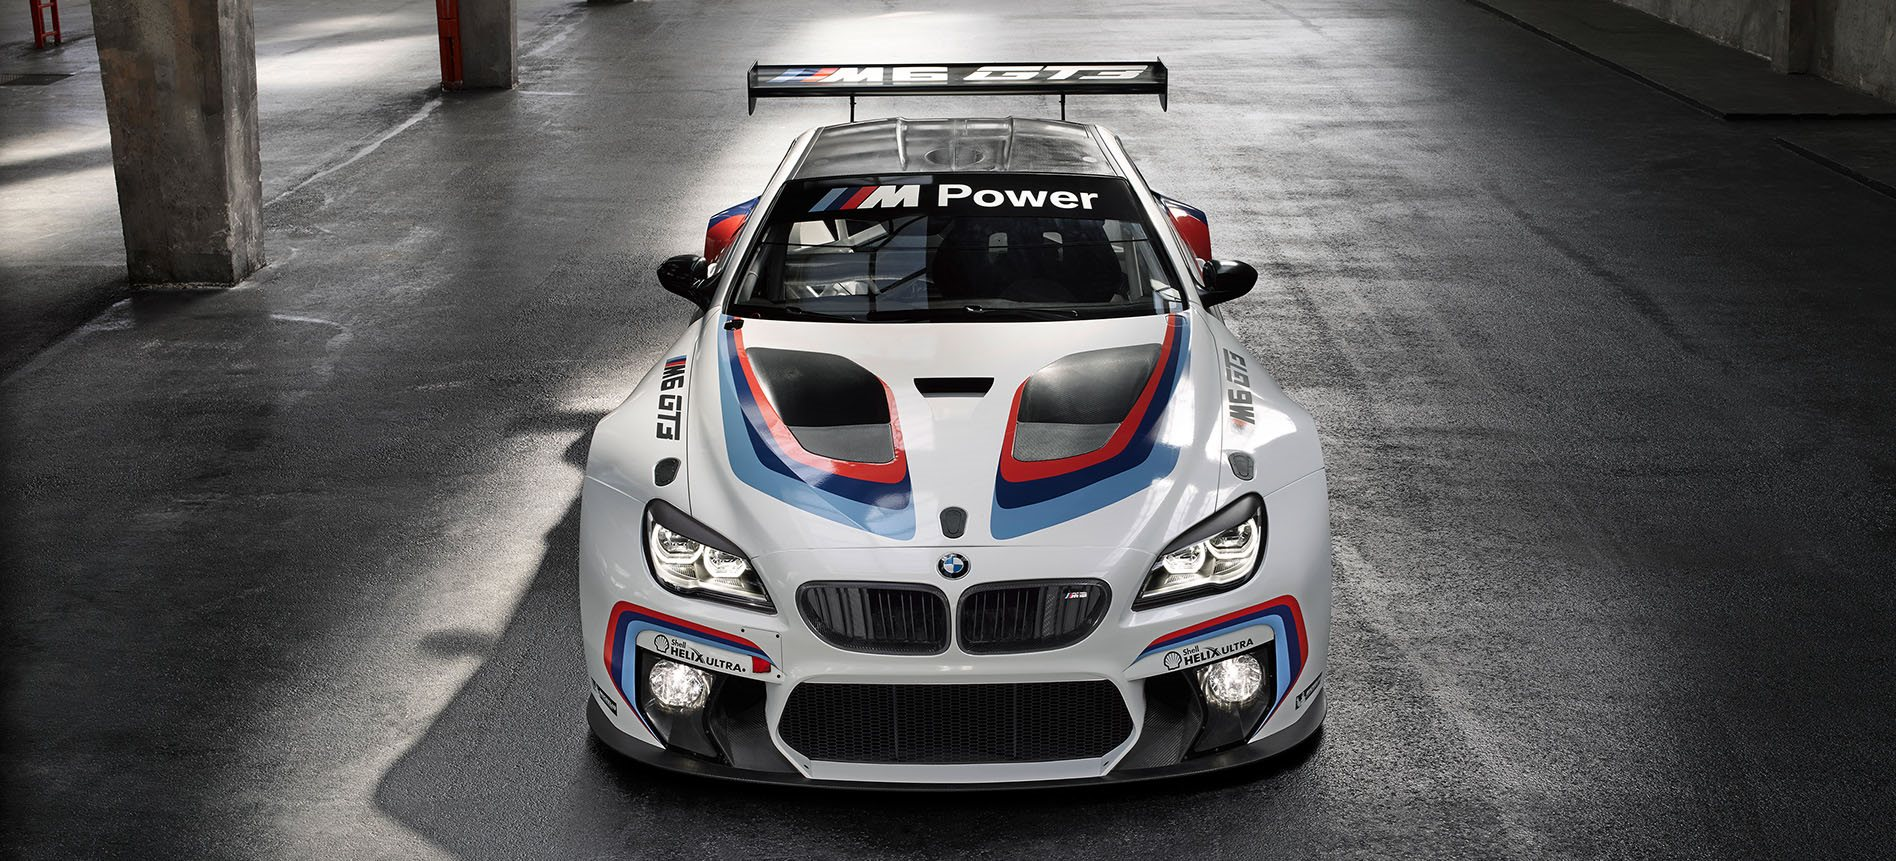 BMW - The Power of M